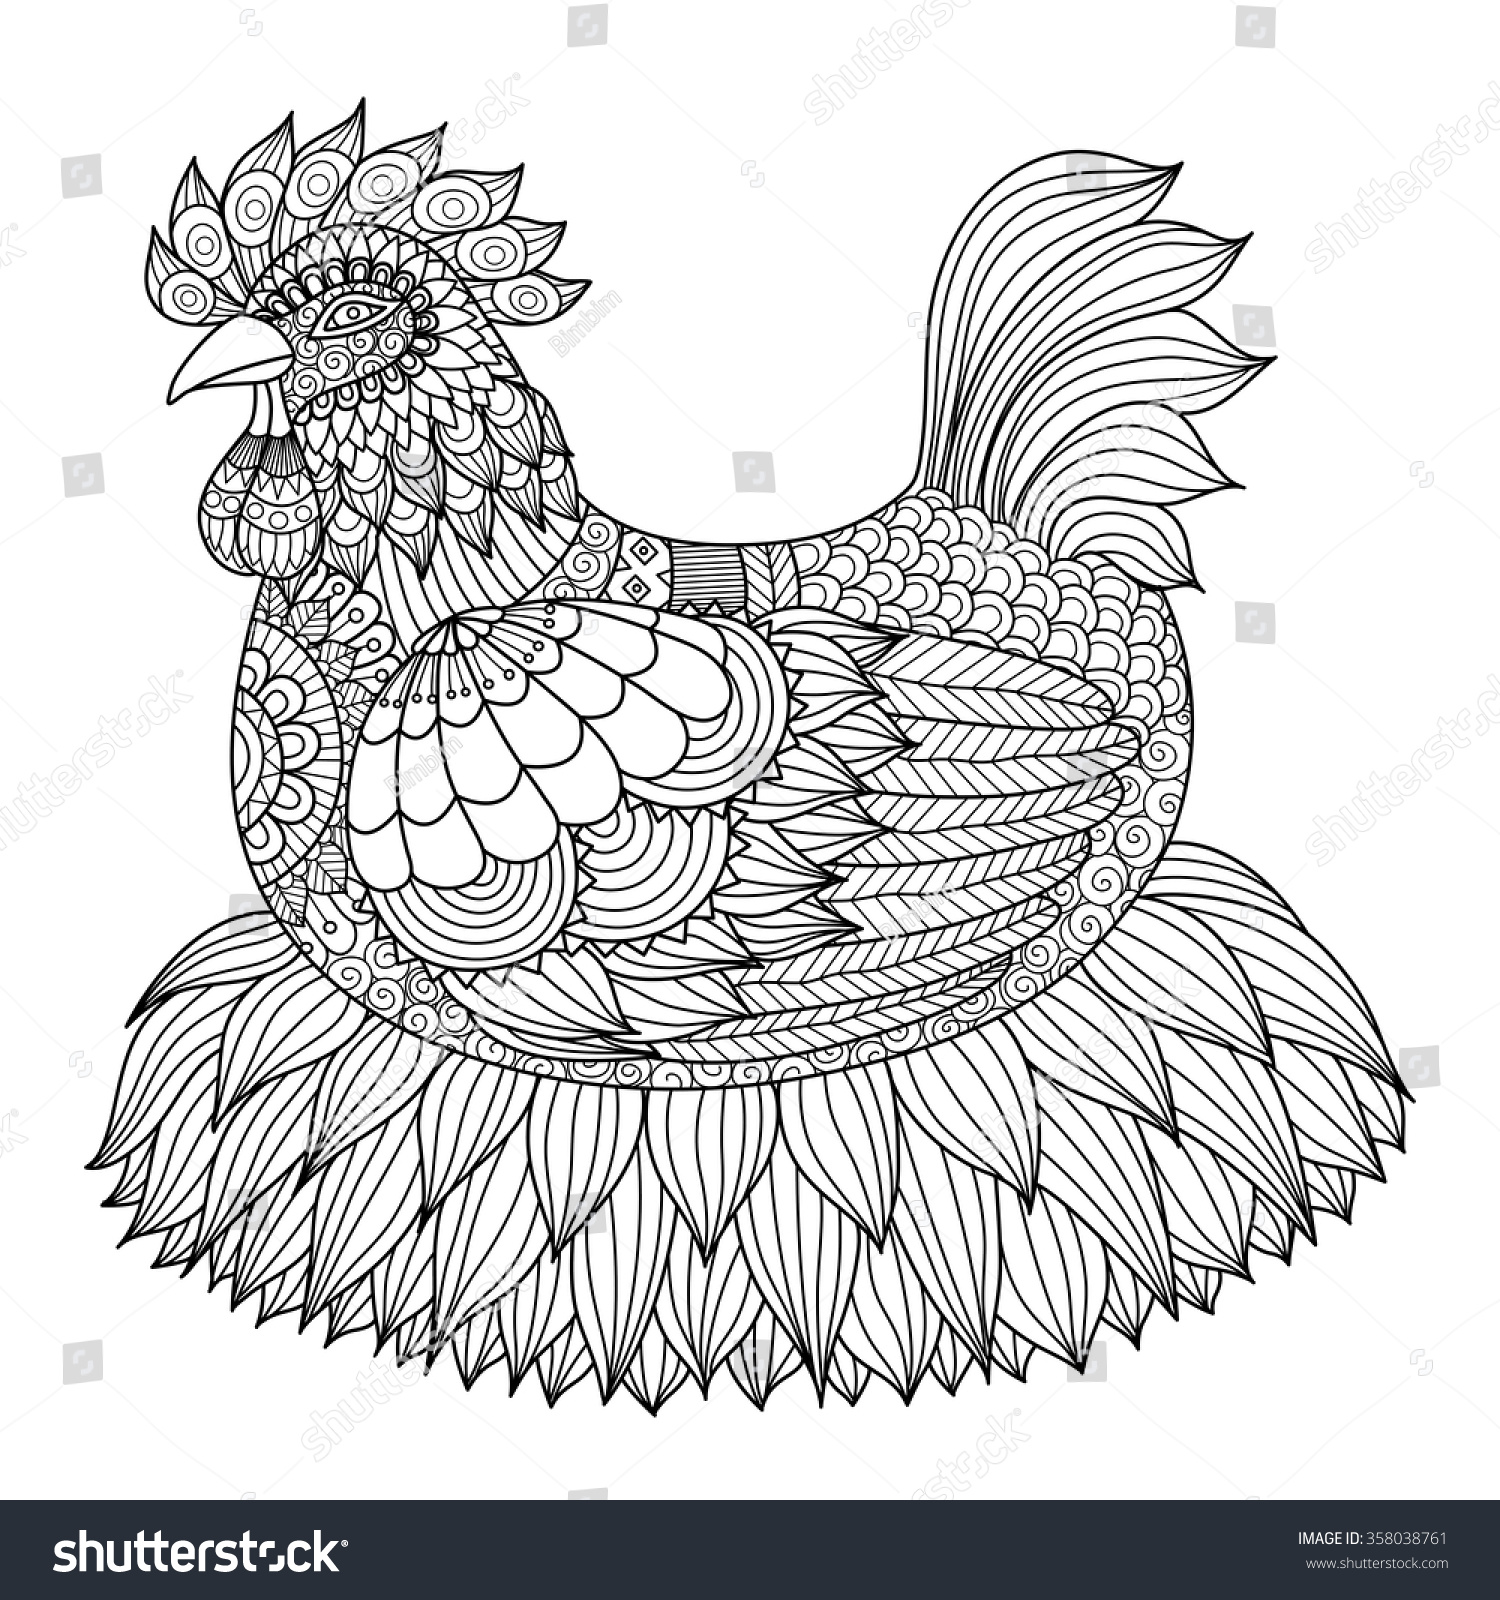 Zen colouring in book - Hand Drawn Zentangle Chicken For Coloring Book For Adult